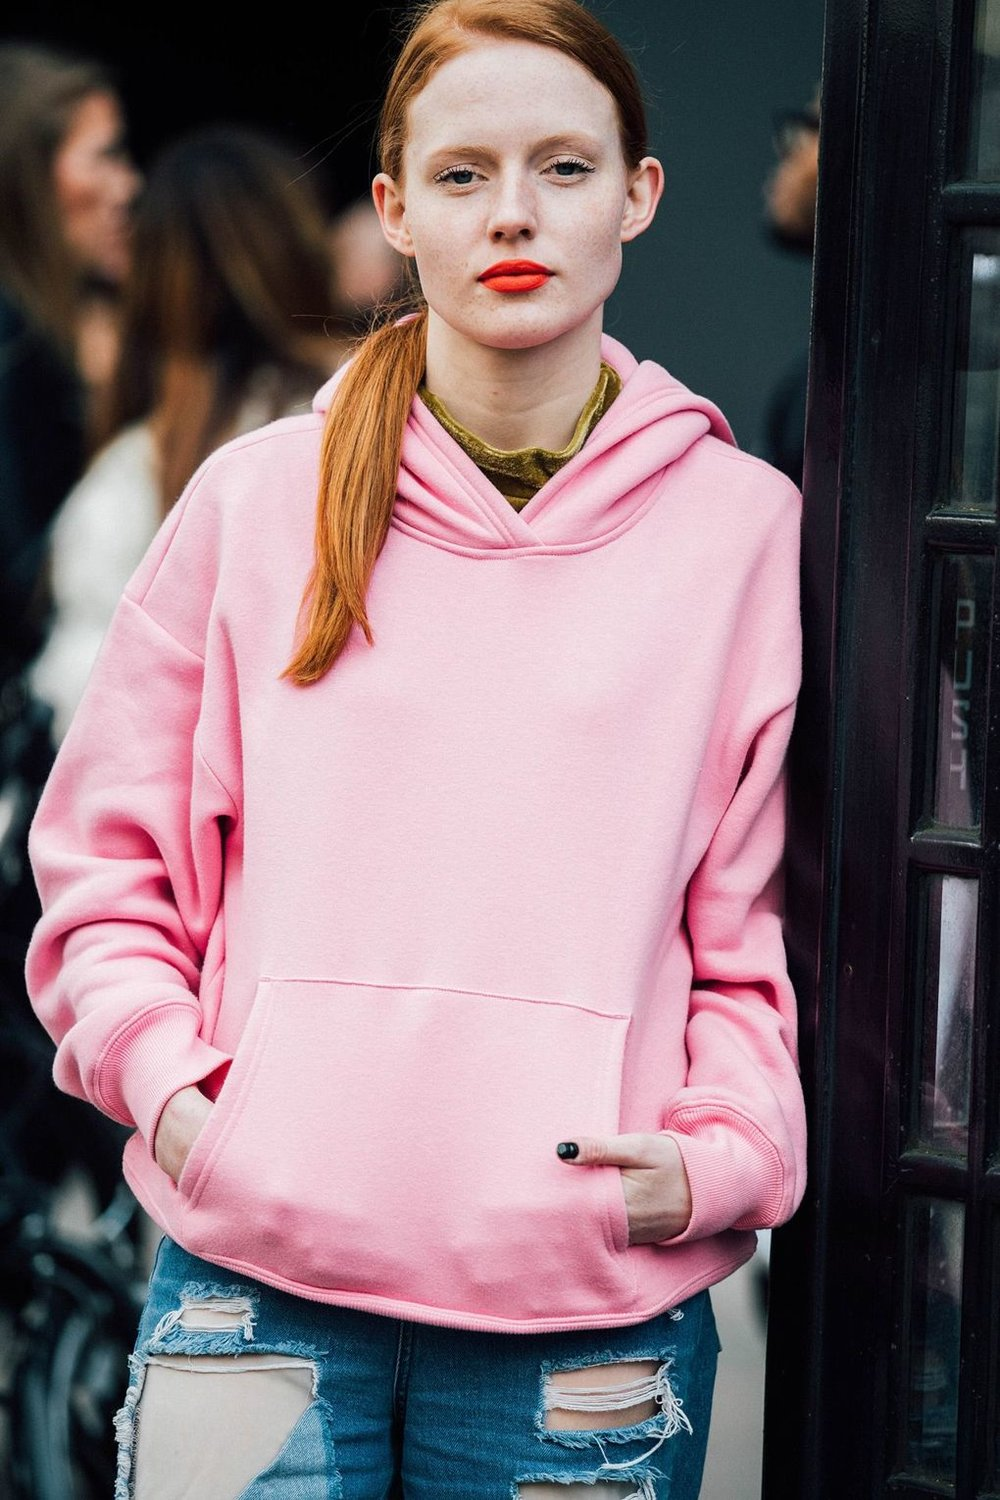 This could almost be a Delores hoodie! If you wanna grab this girl's style, our pink hoodies are perfect.